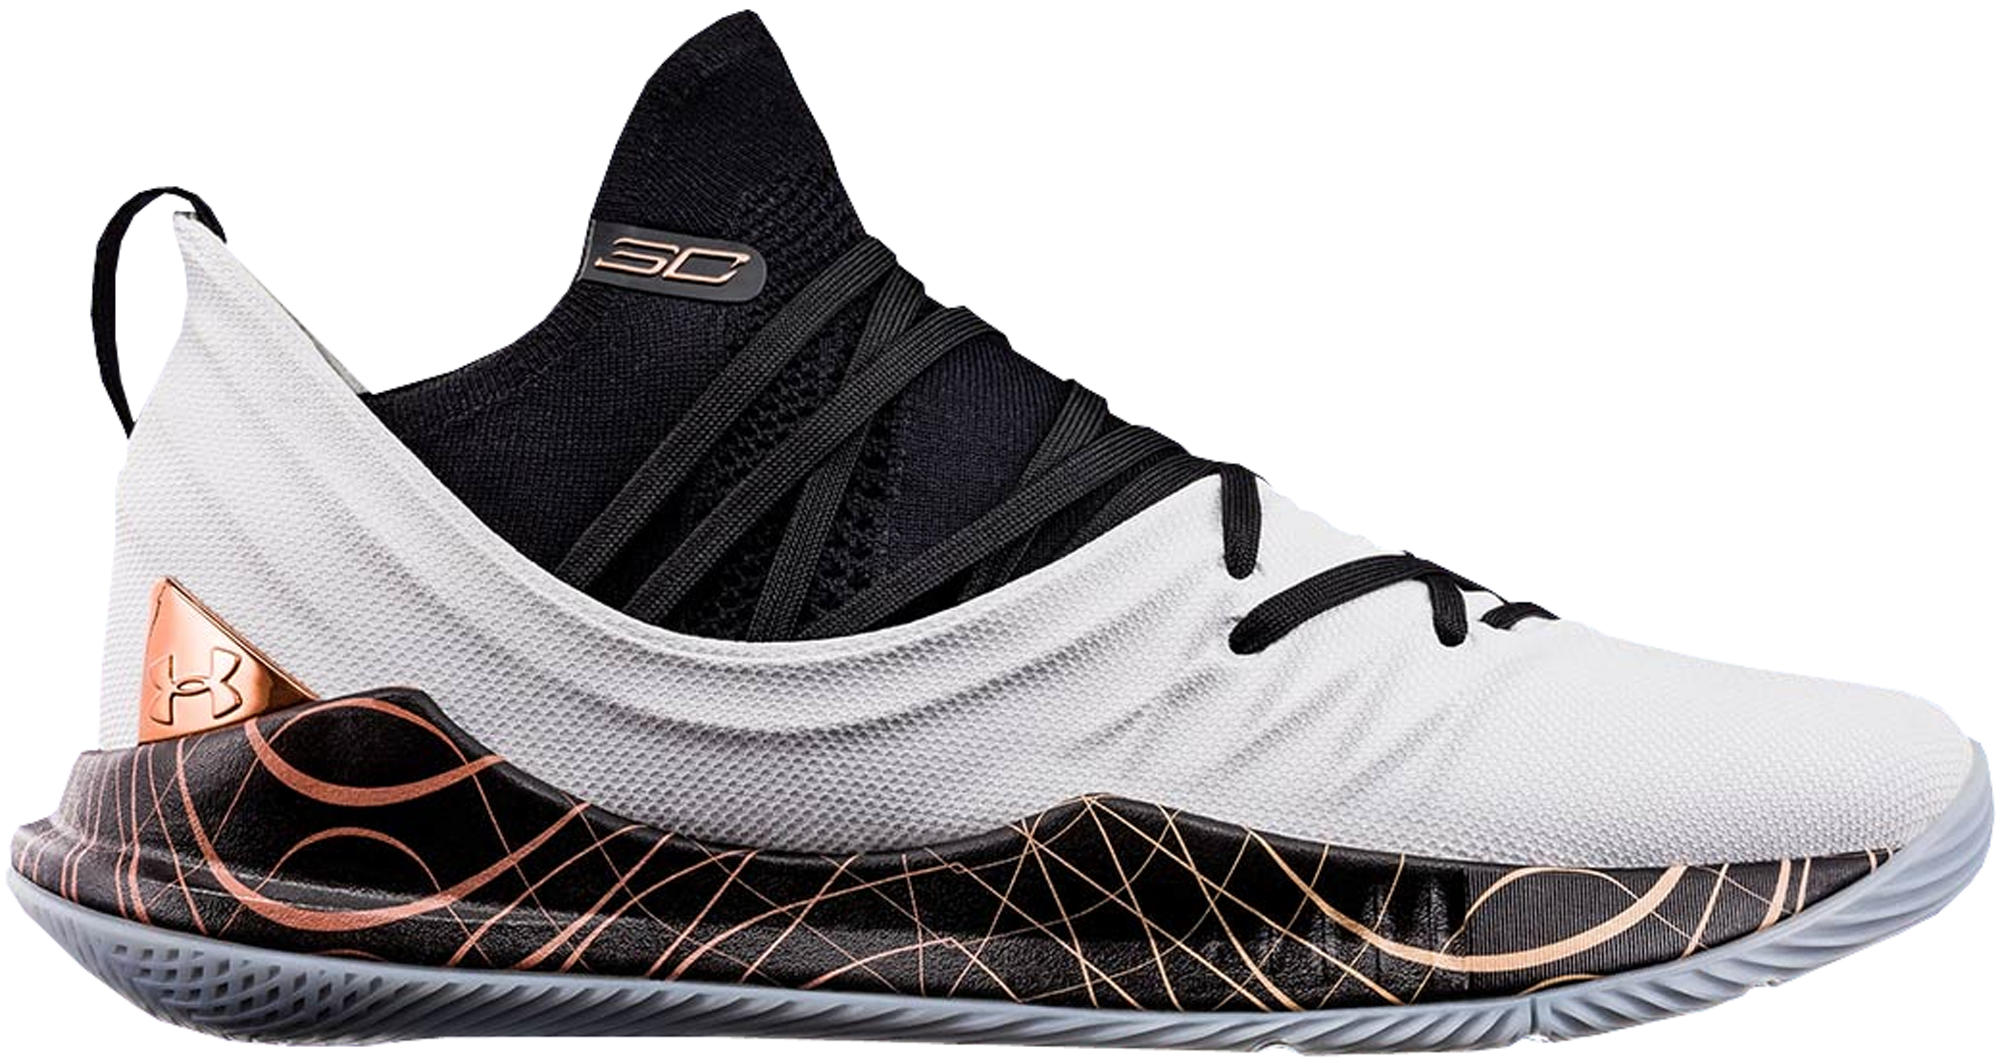 Under Armour Curry 5 Copper